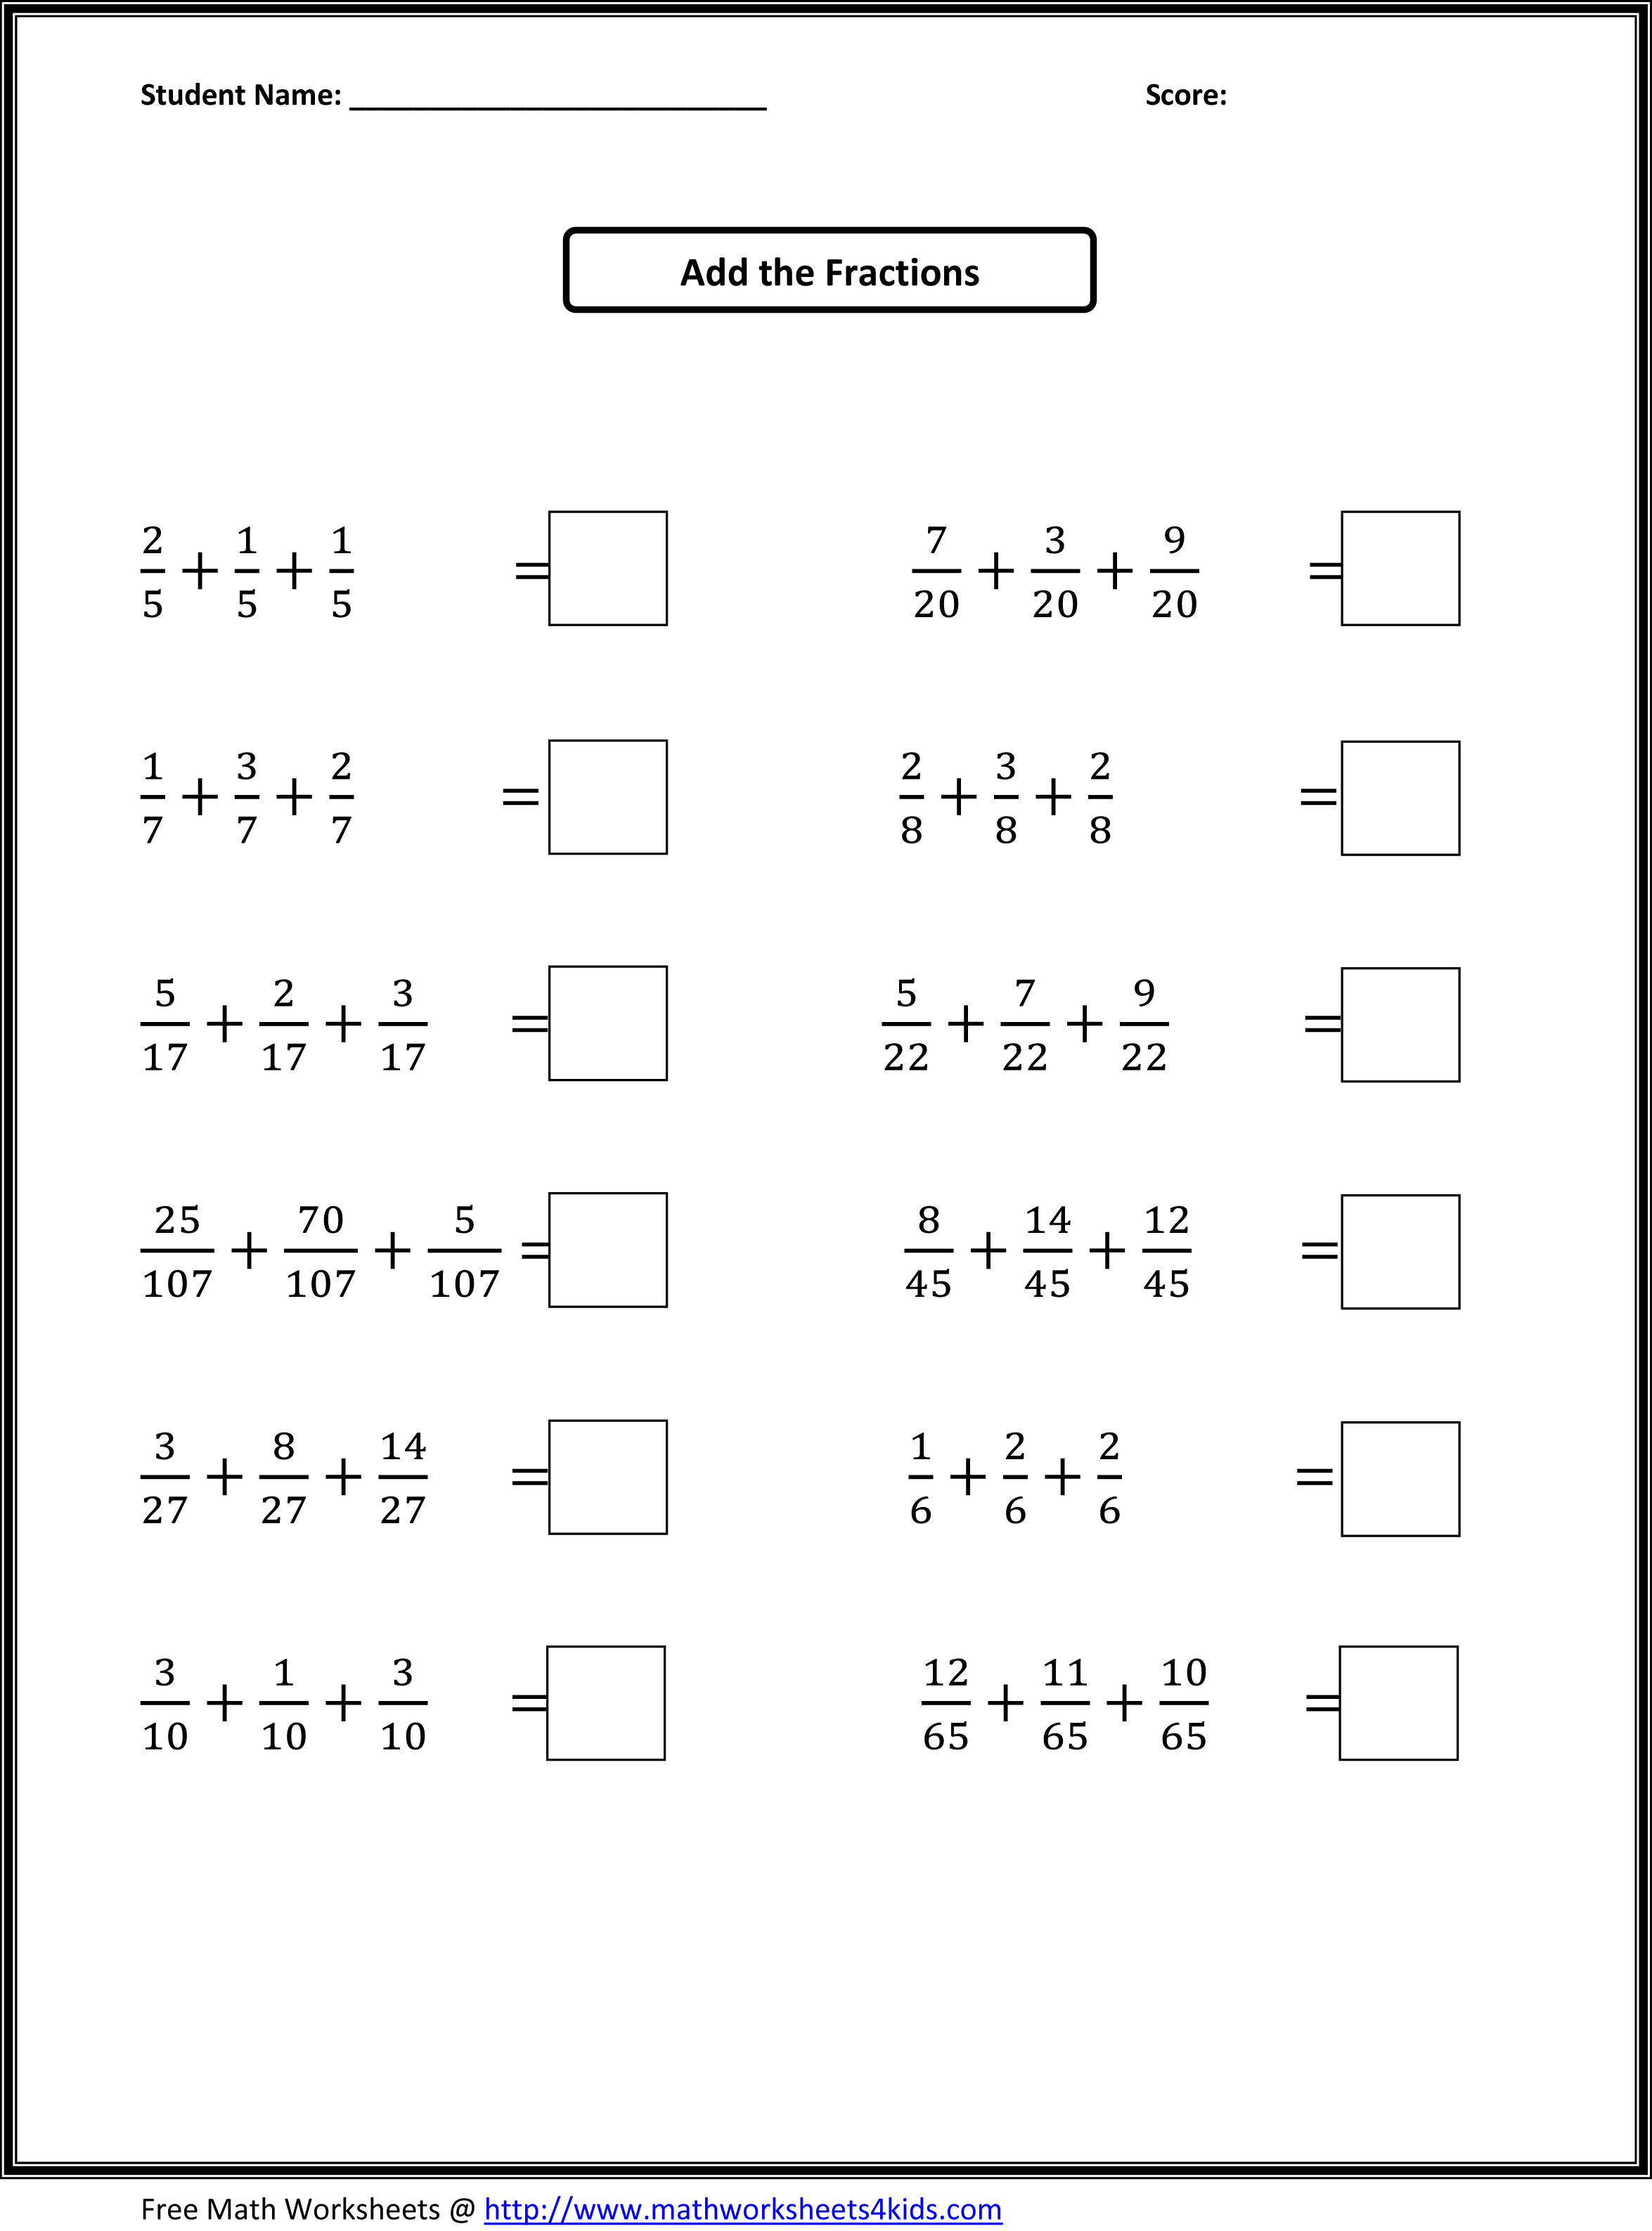 Worksheets Math Worksheets For 5th Grade Fractions 4th grade math worksheets multiplying fractions kids activities addition of worksheets